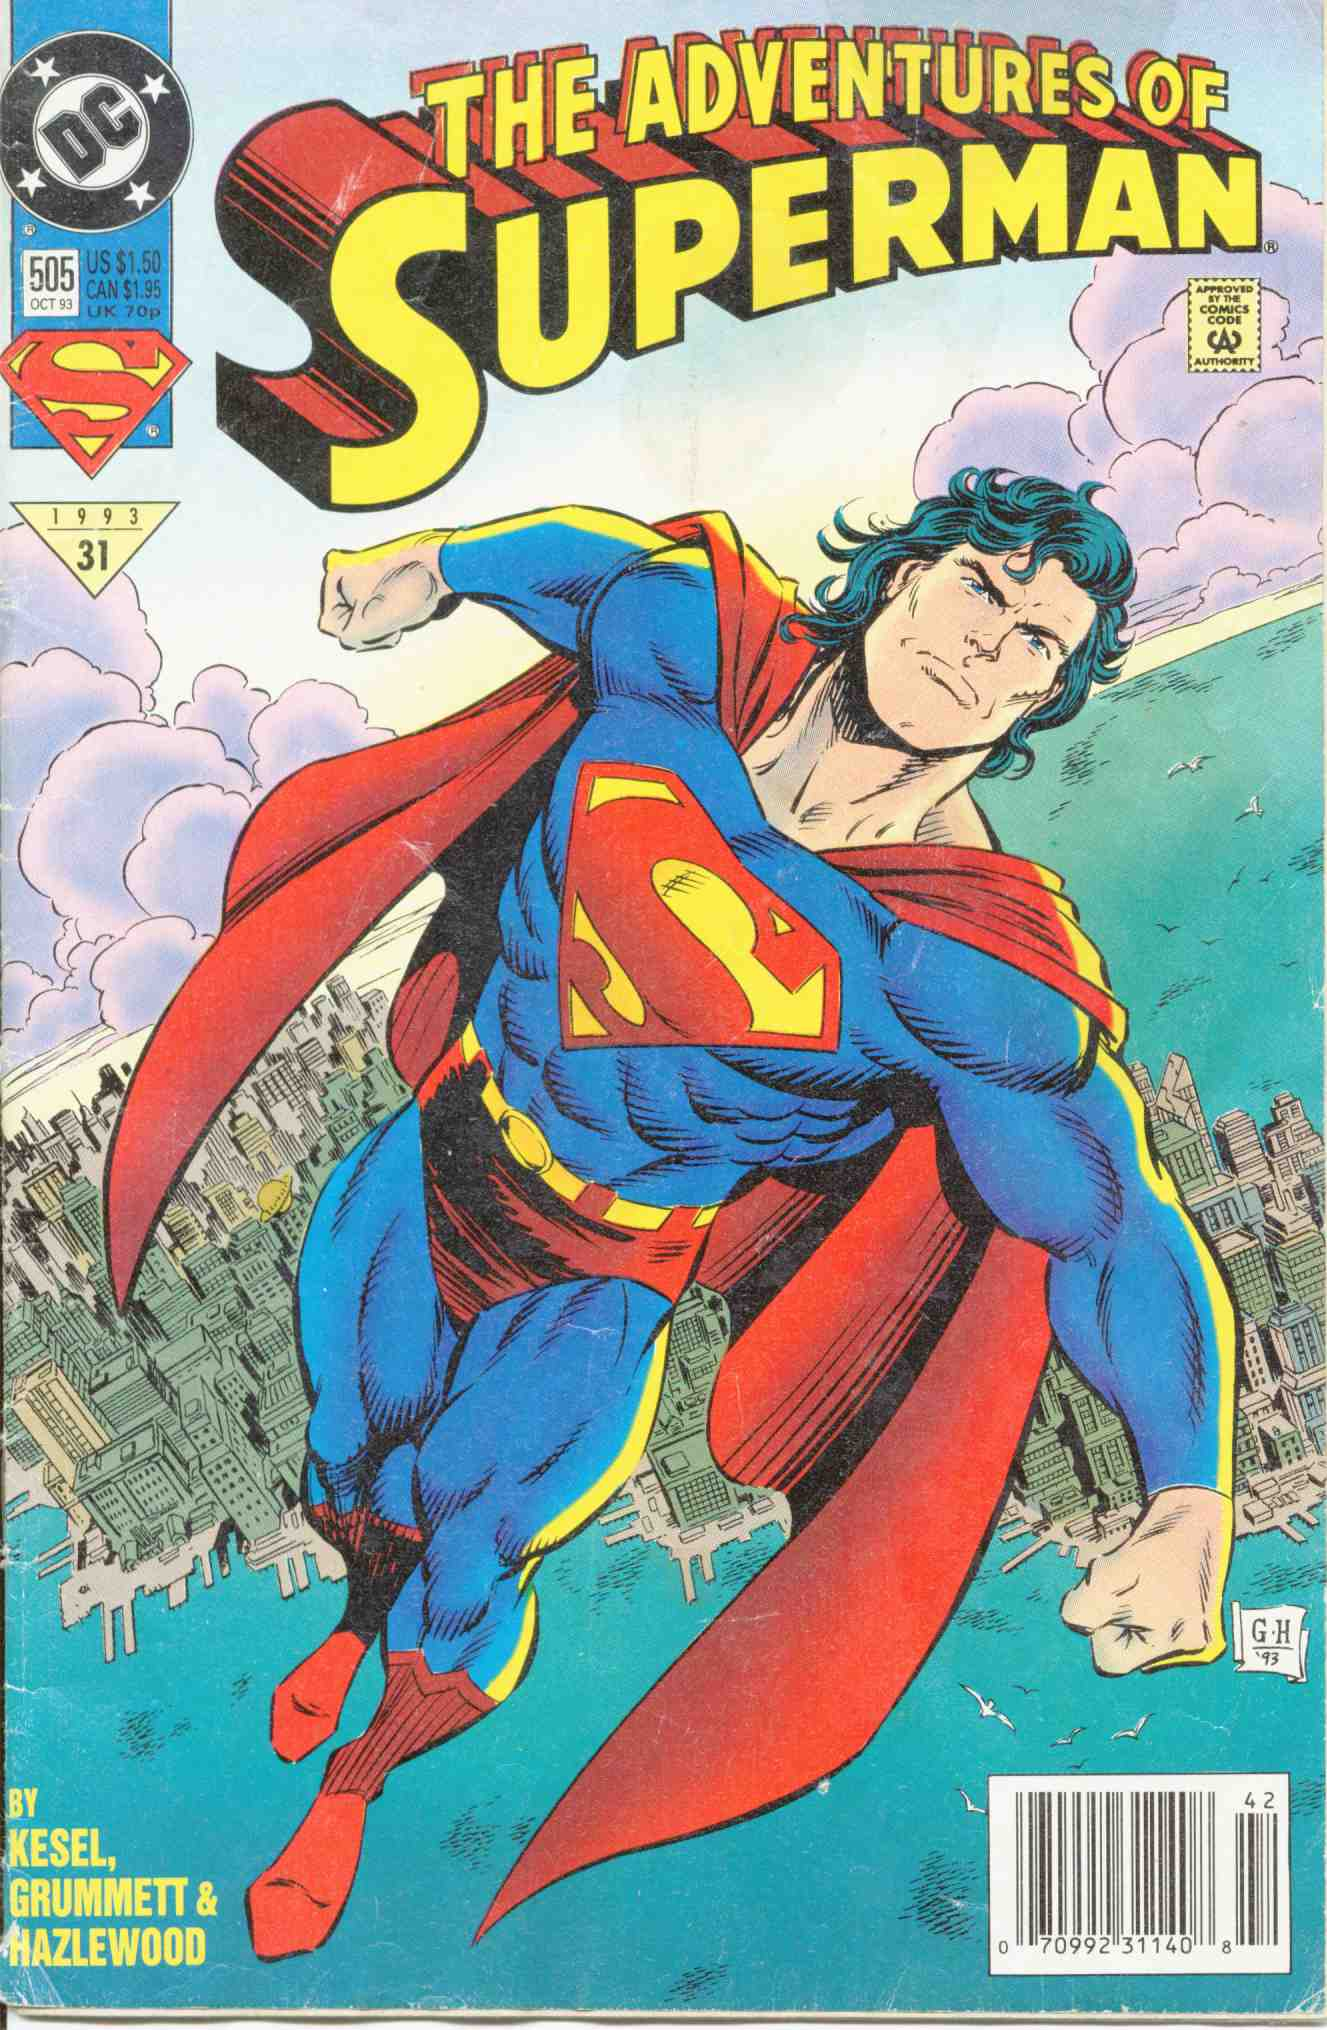 Comic Book Cover Artist Wanted : Superhero bosses which one would you pick bill gates